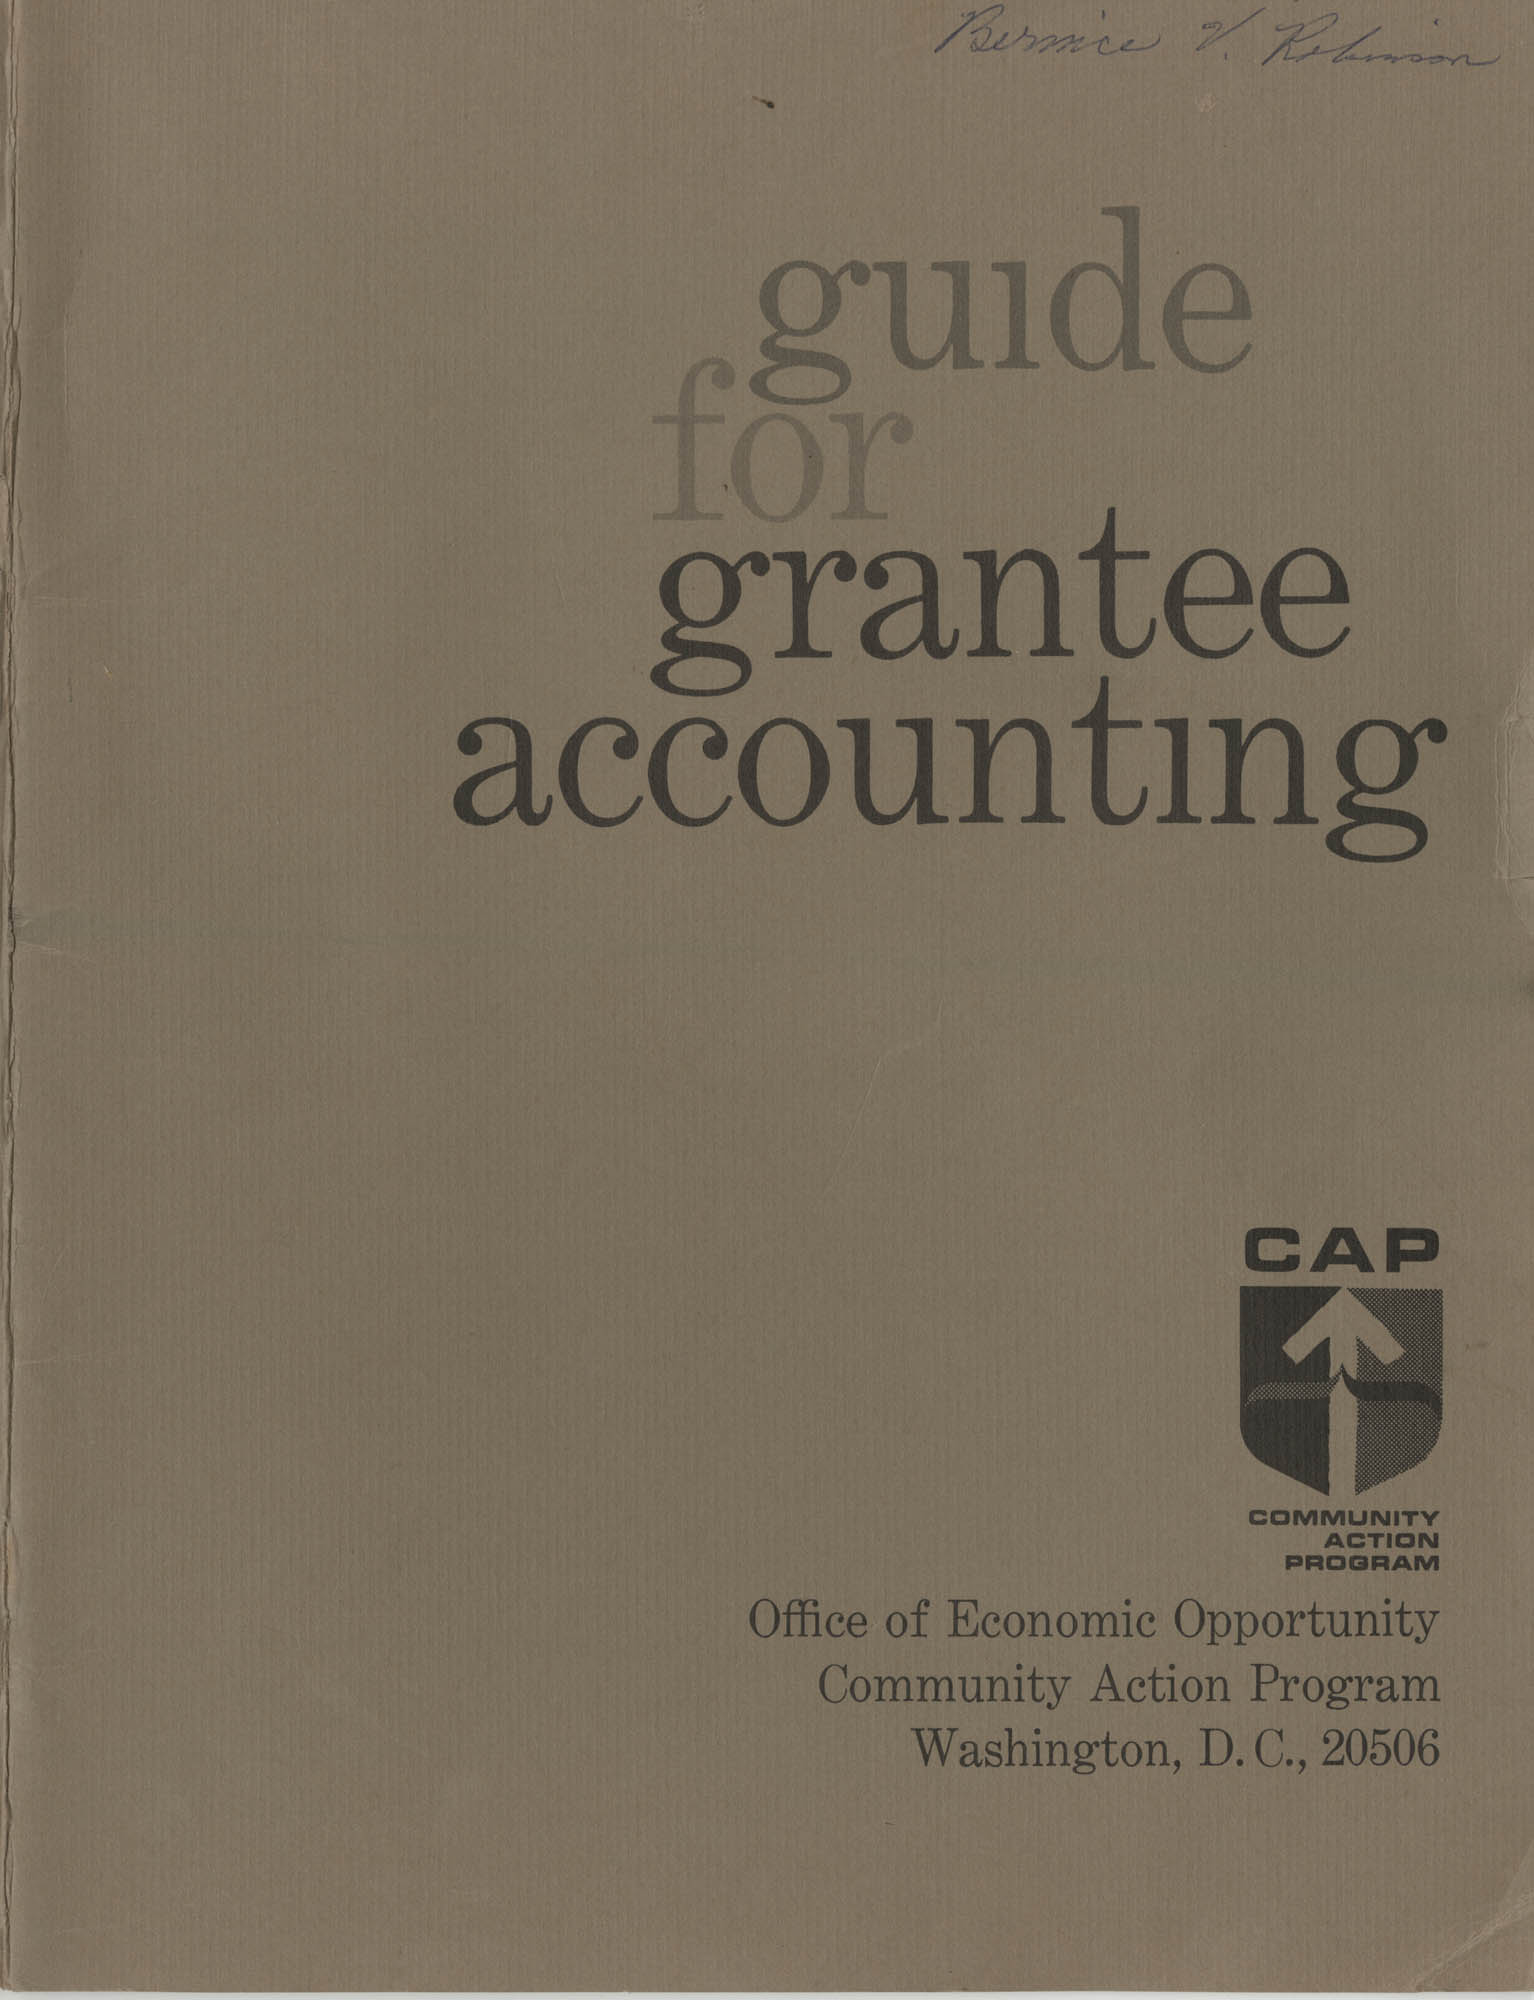 Guide for Grantee Accounting, Front Cover